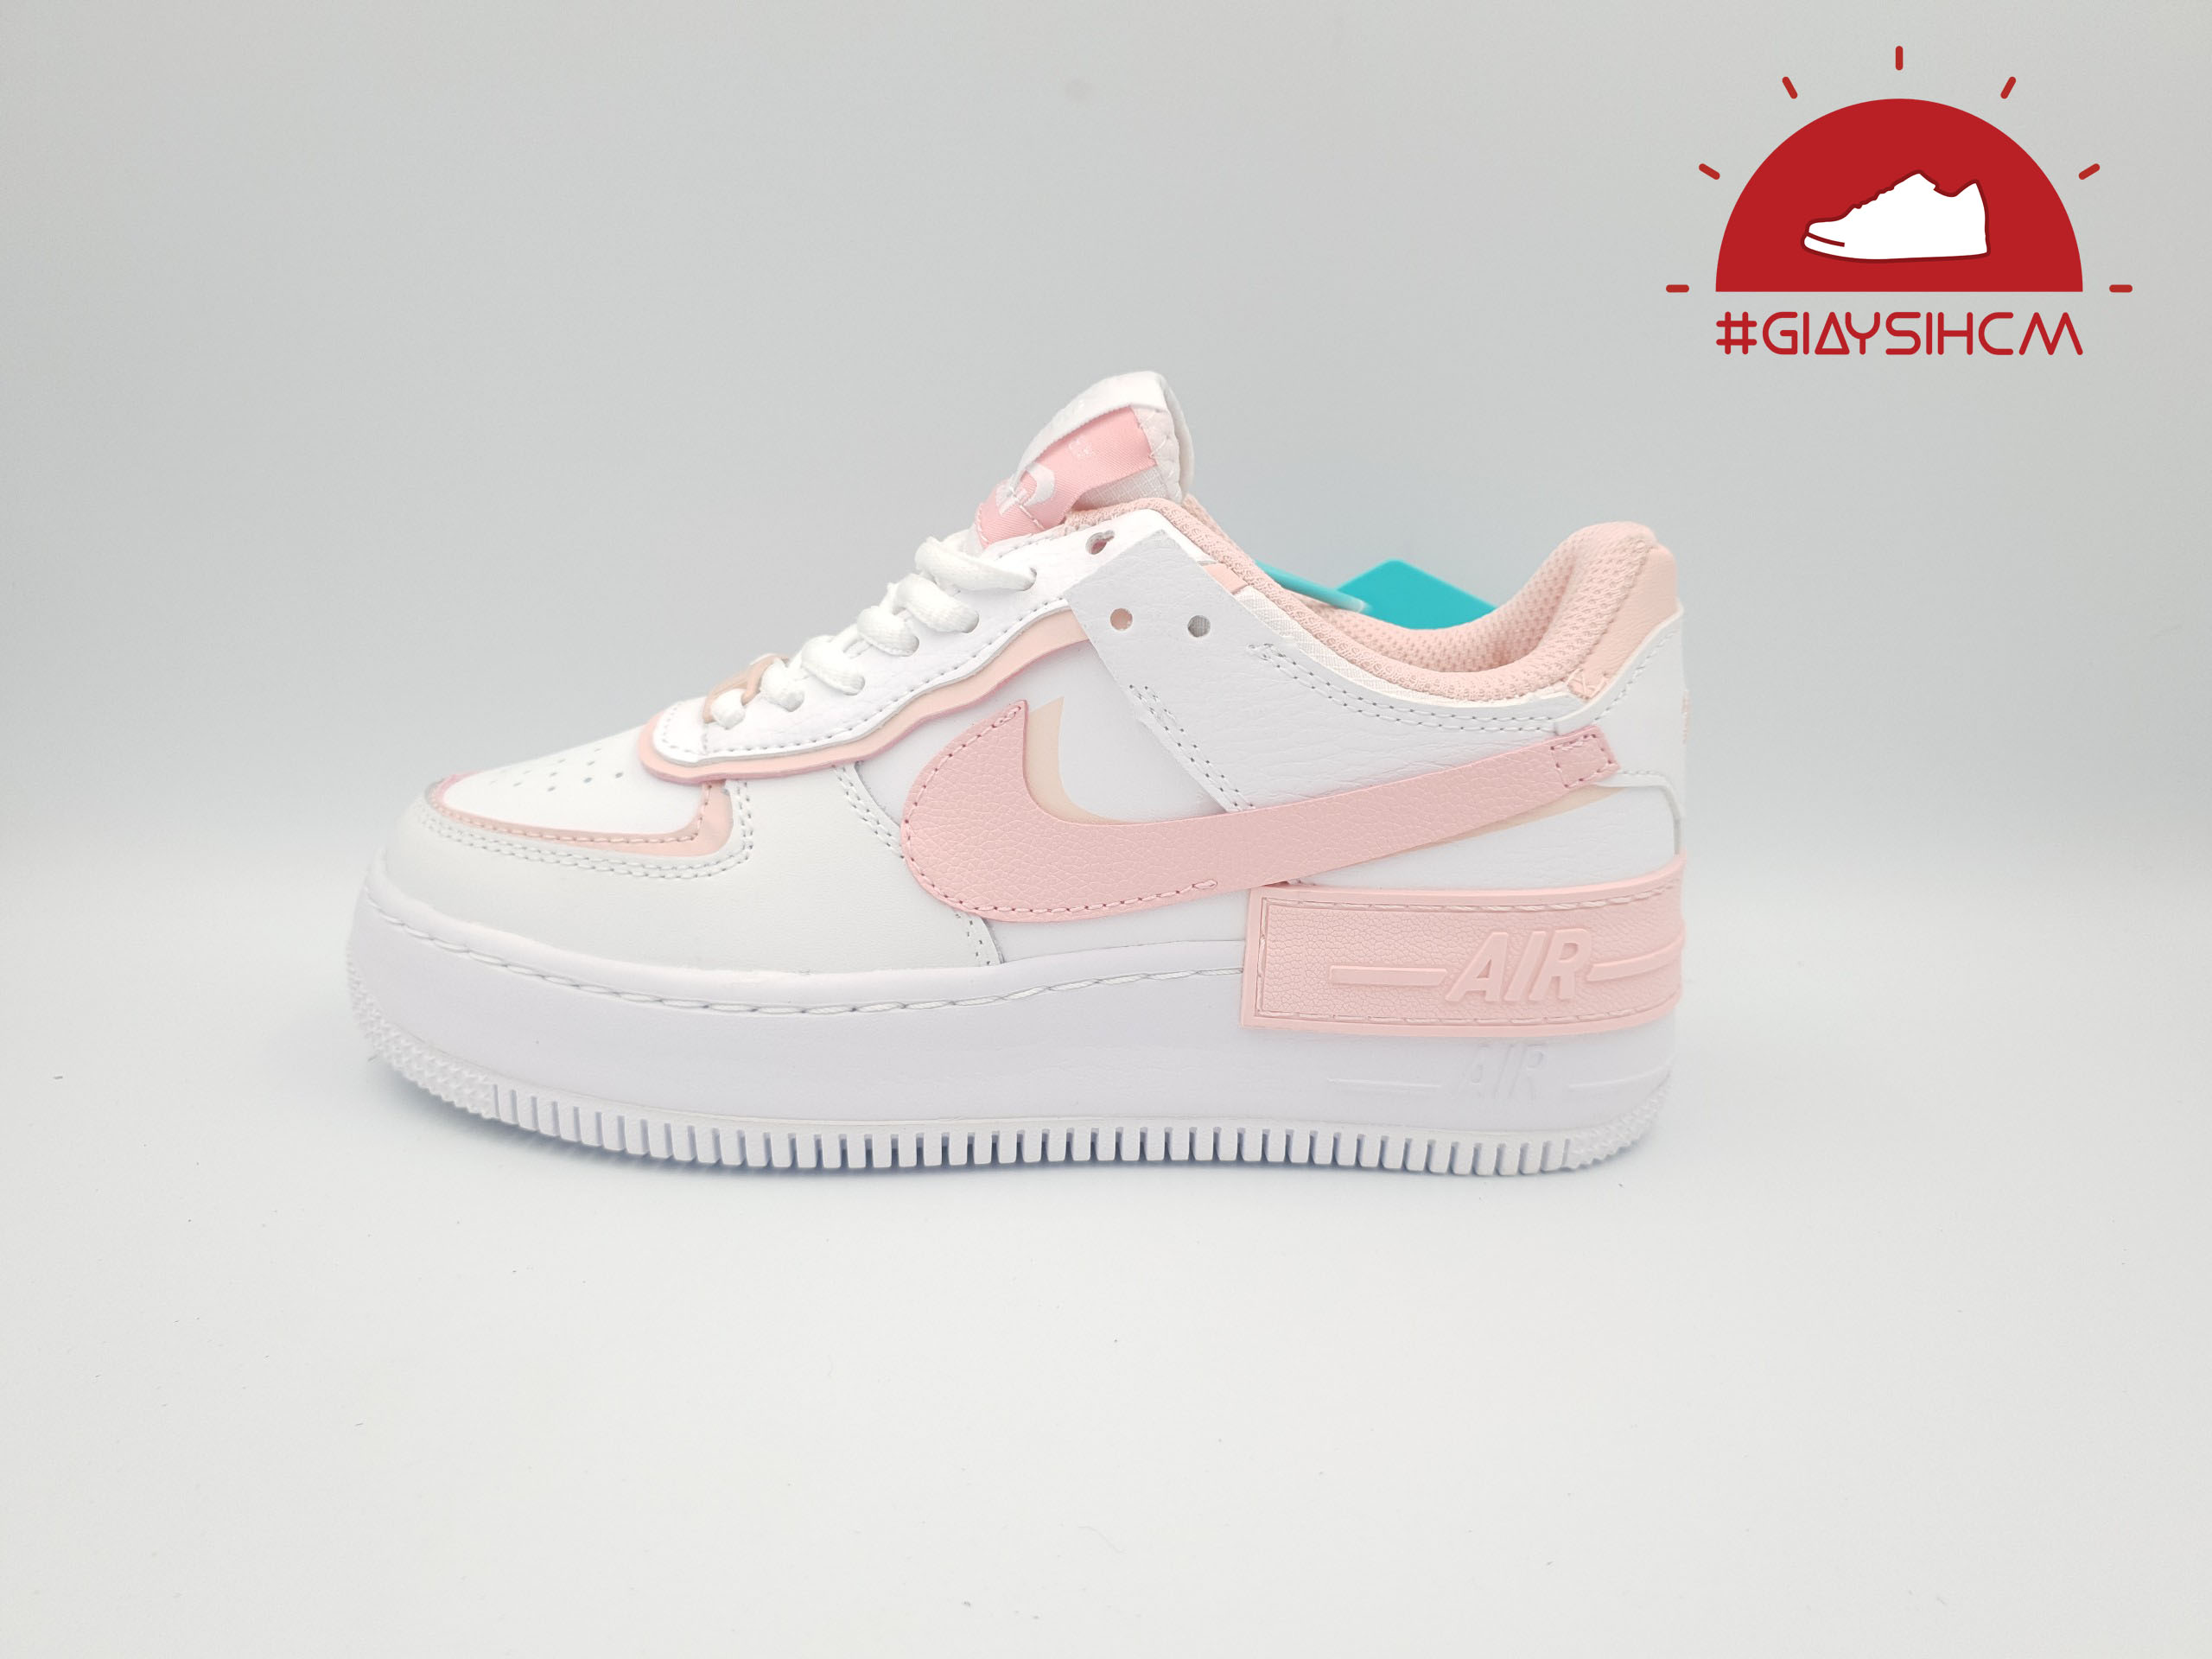 giay-nike-air-force-1-shadow-white-coral-pink-replica